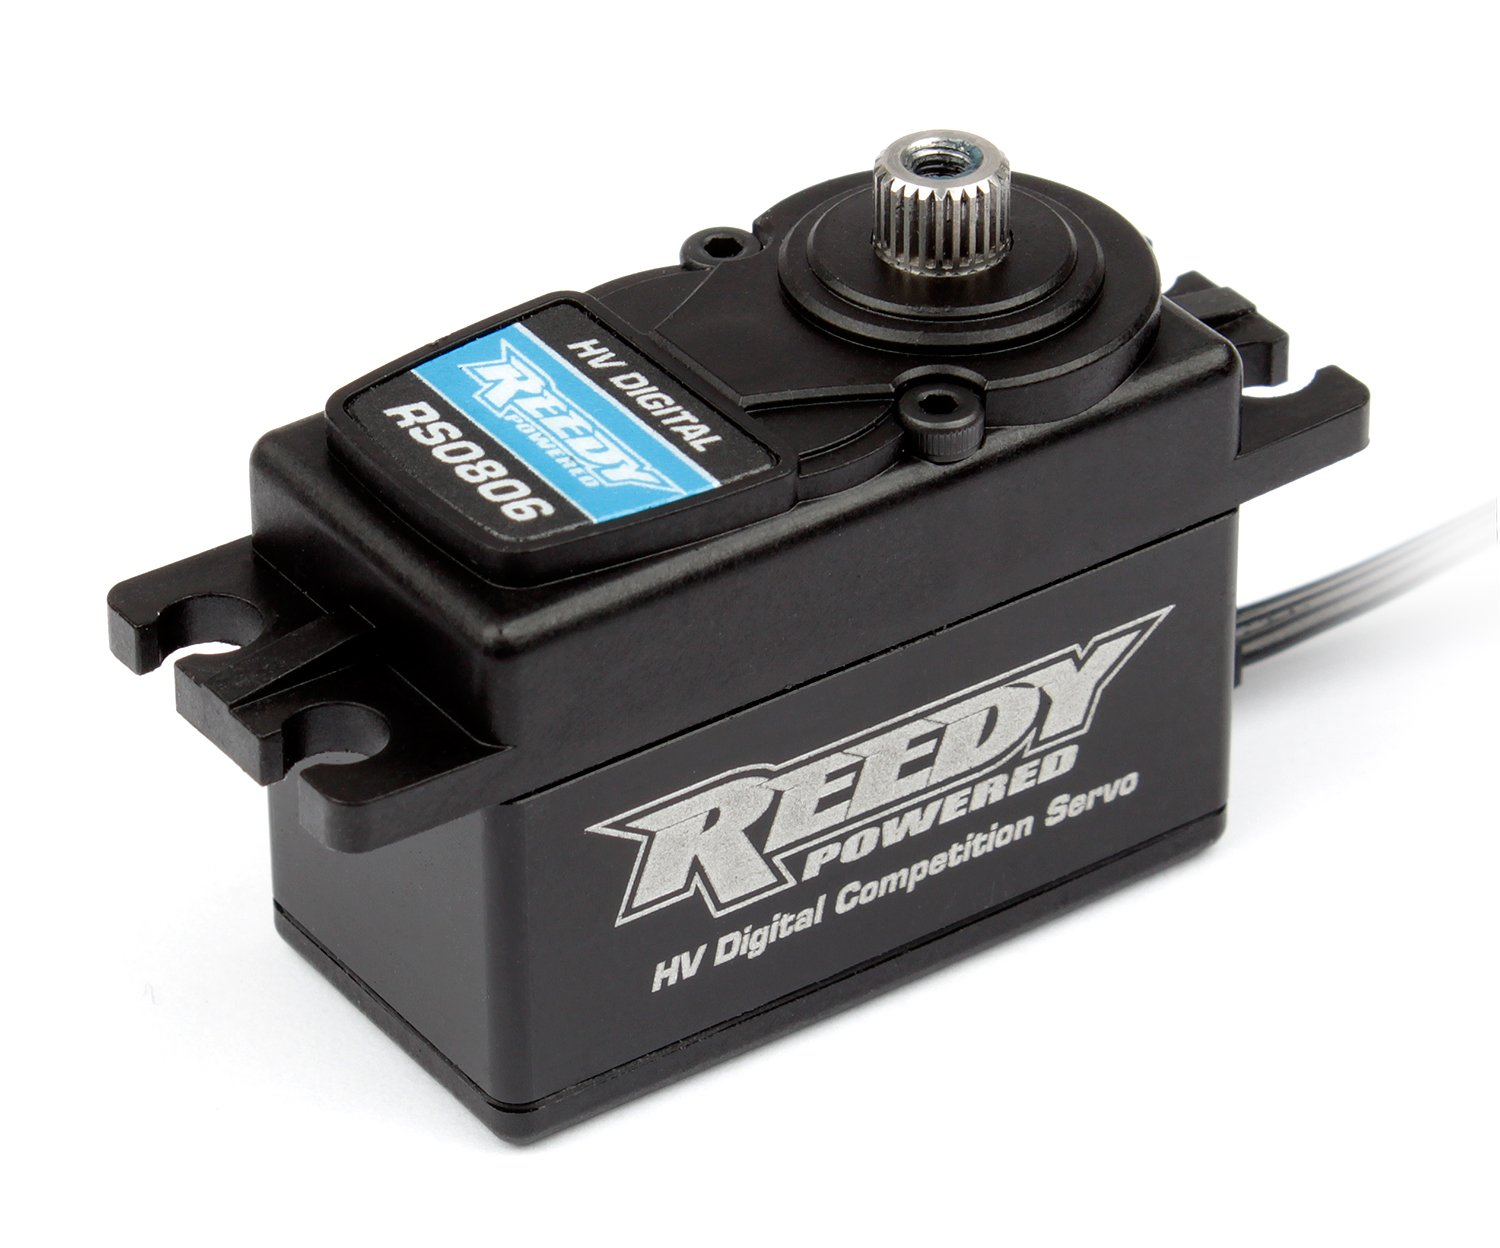 Team Associated 27108 Reedy Rs0806 Low Profile Digital High Voltage Hi-Speed Competition Hobby RC Vehicle Servos,